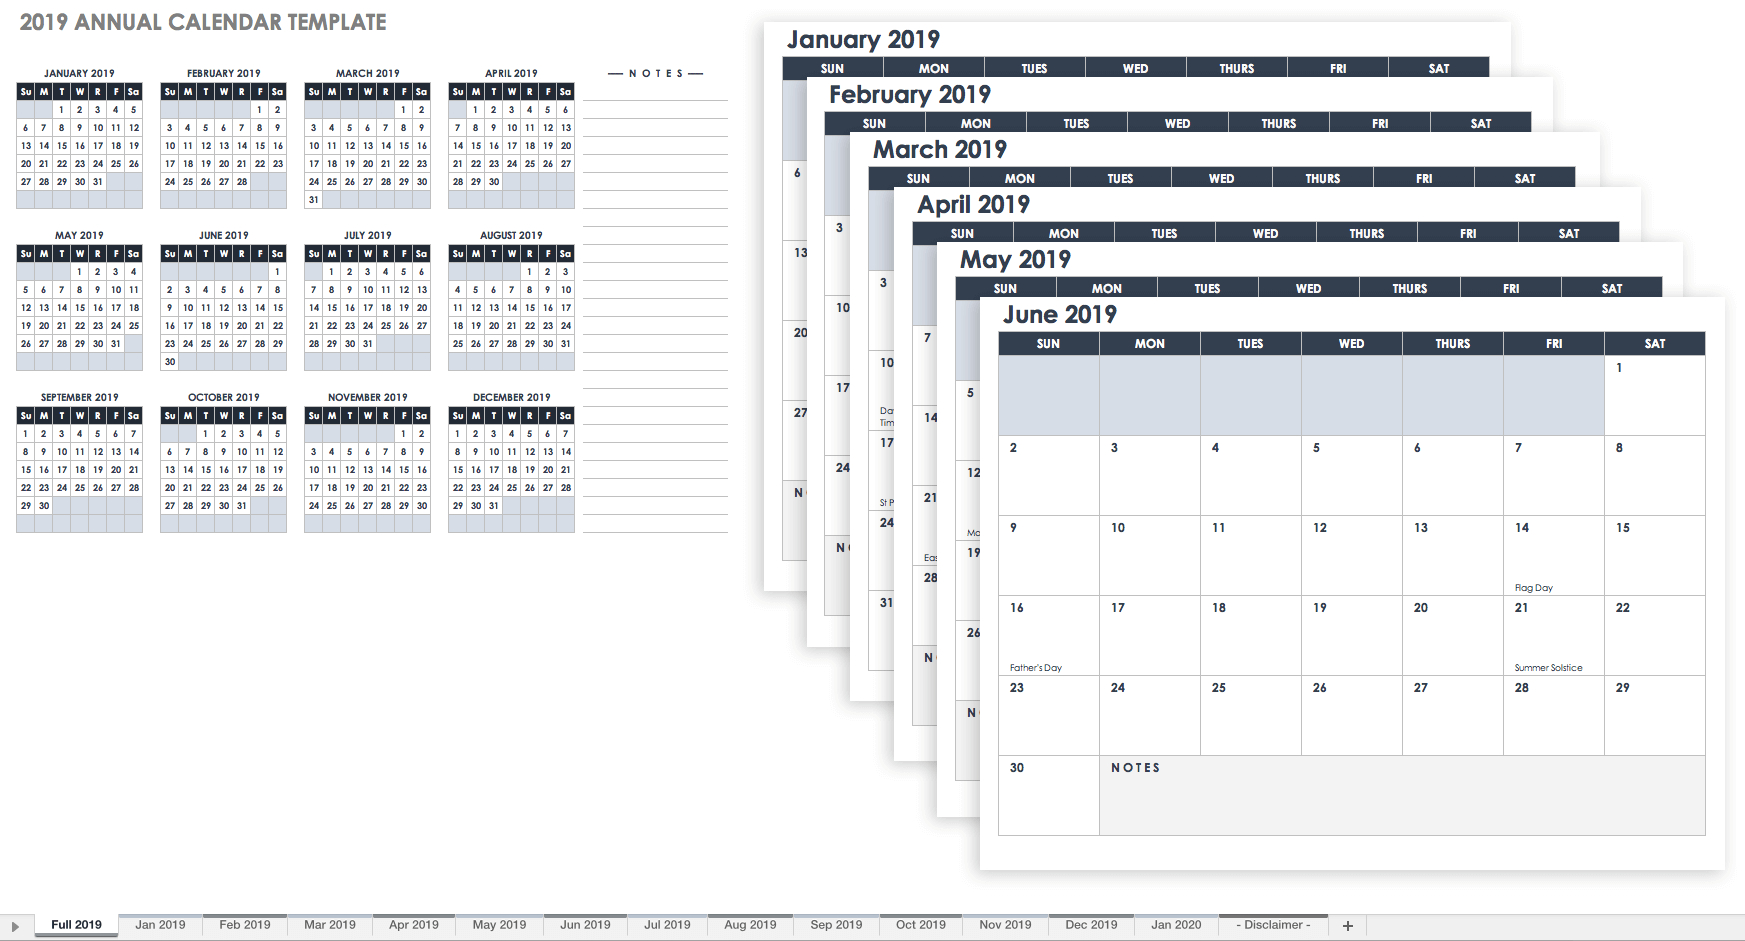 15 Free Monthly Calendar Templates | Smartsheet with regard to Printable Work Calendar Monthly Template